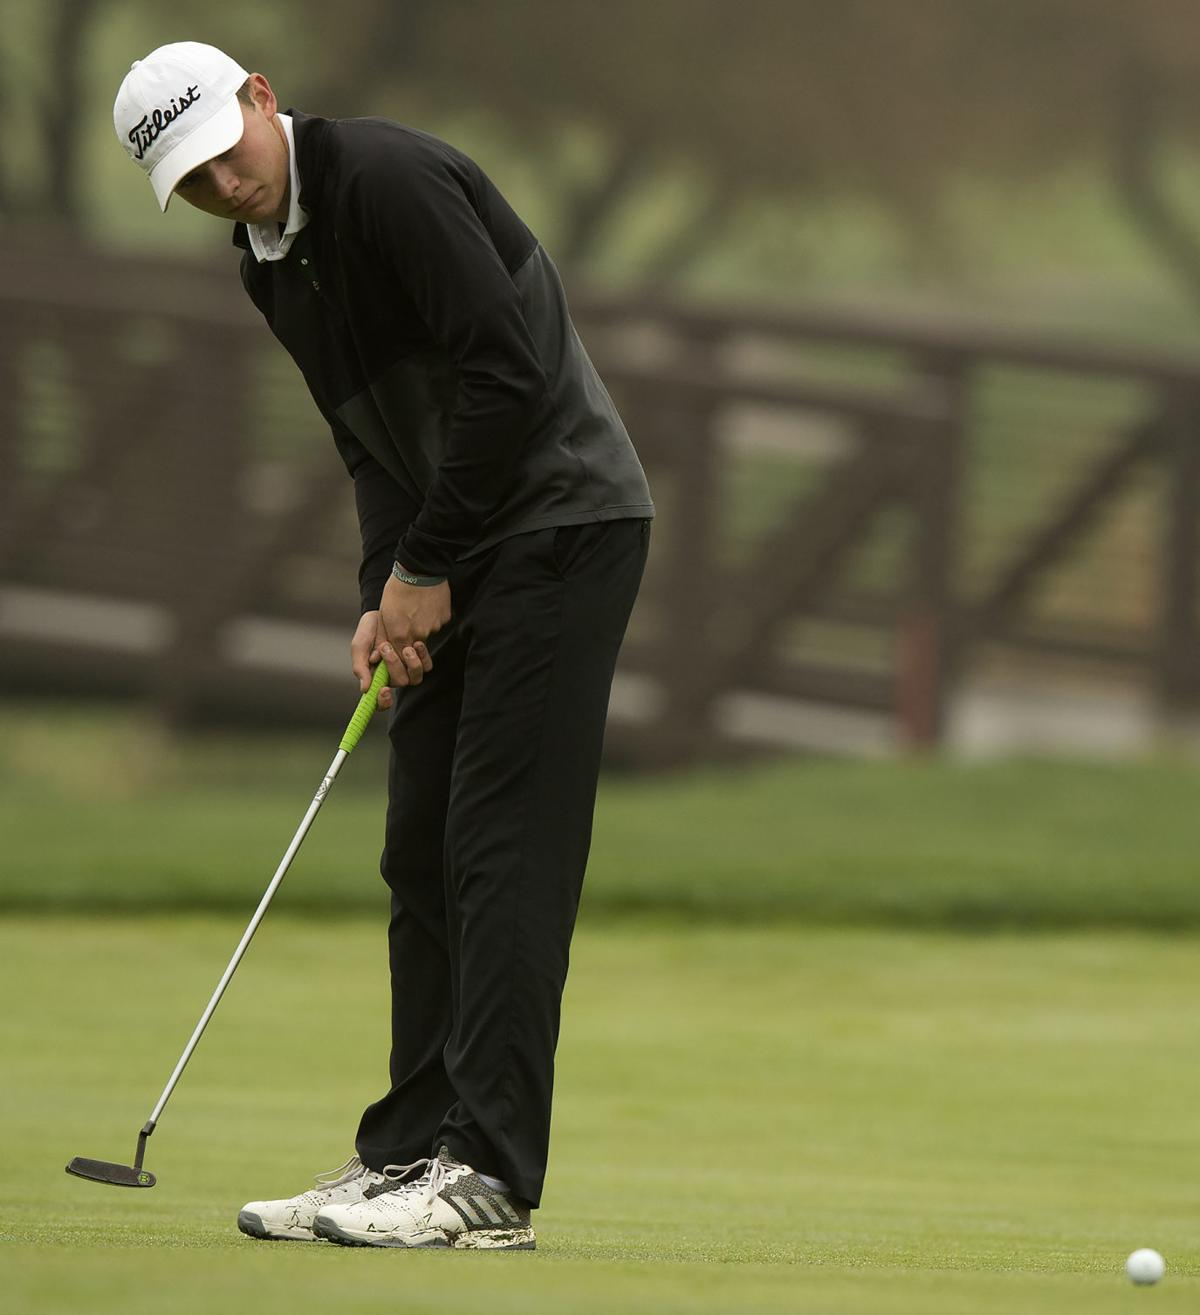 Josh Bartels putts in HAC golf championship at Holmes